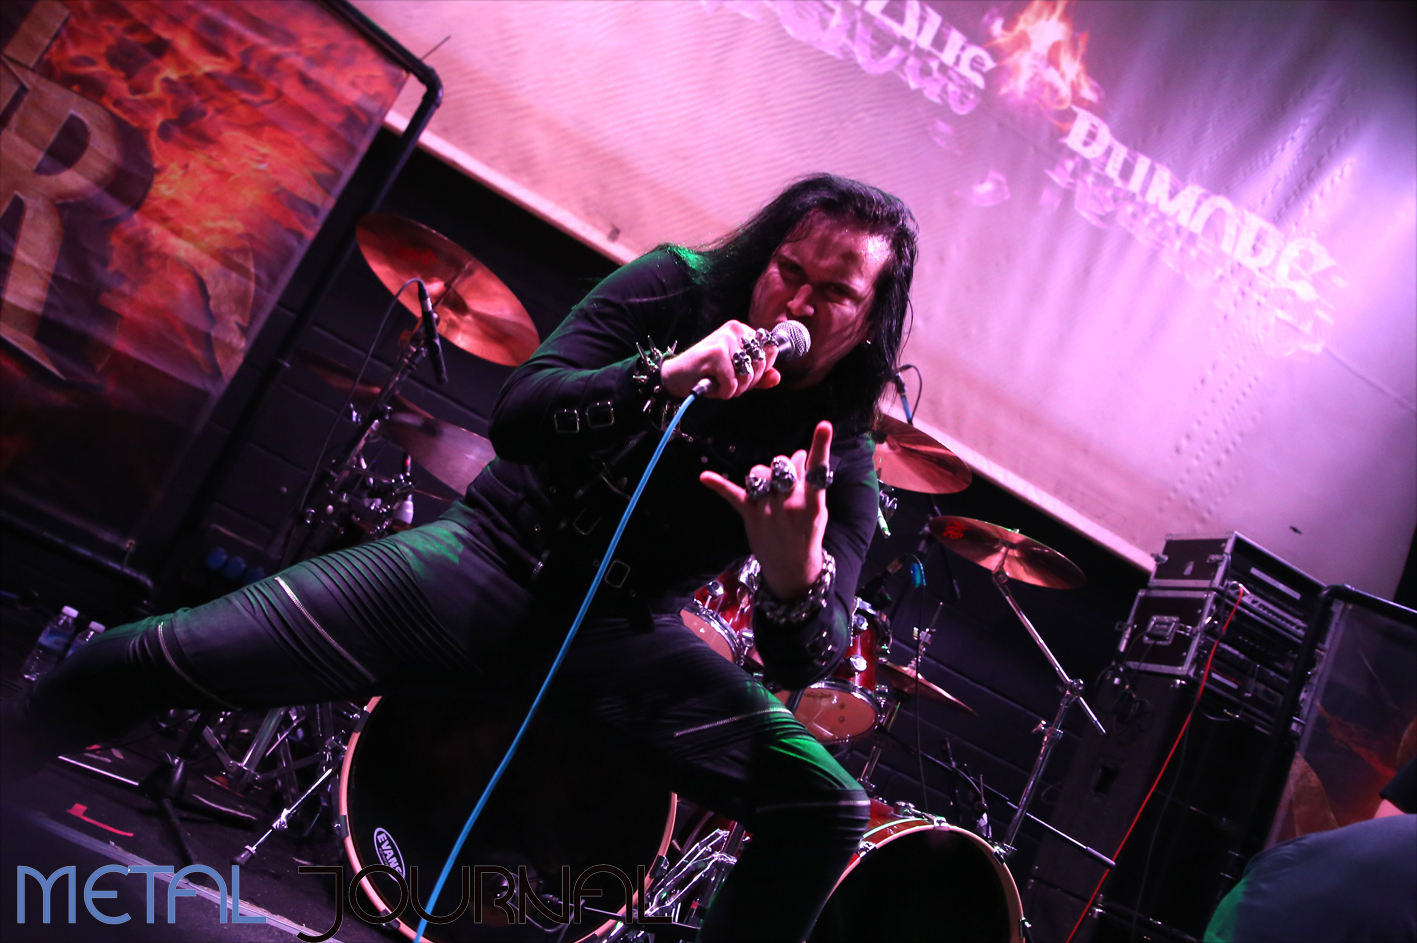 vicious rumors - metal journal irun pic 8